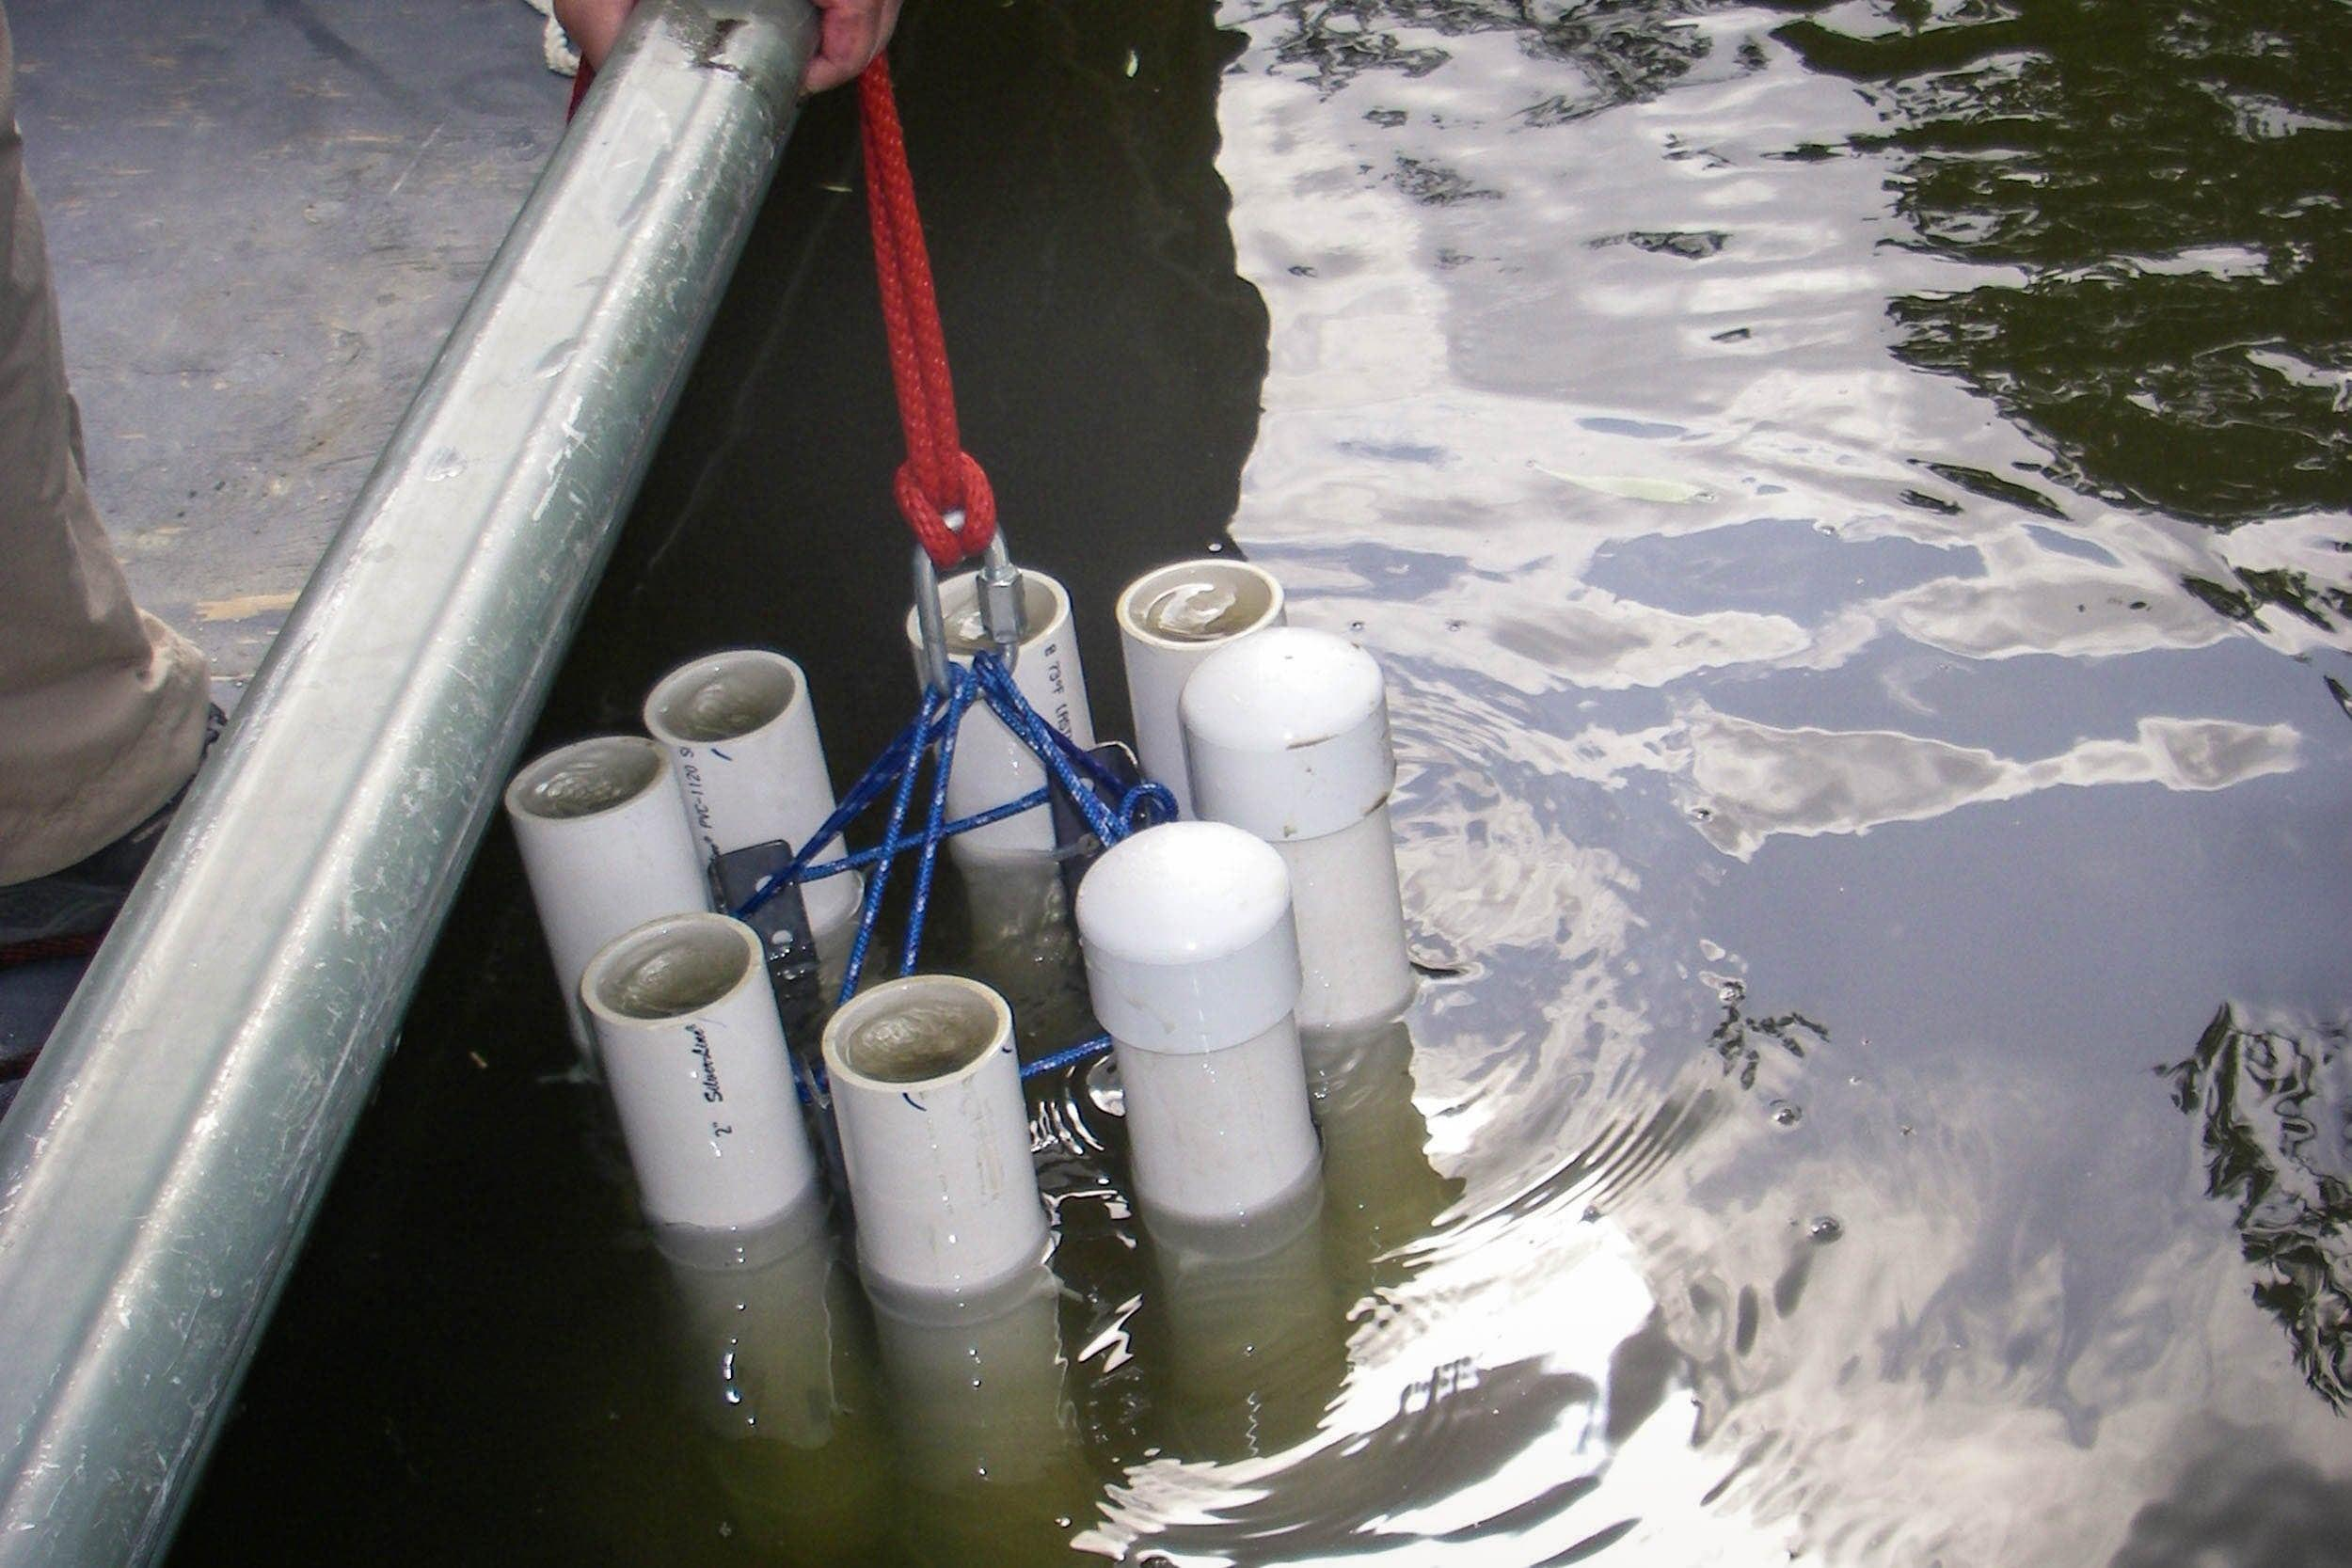 Alternative shallow water sediment sampler used at site 1 during the study.